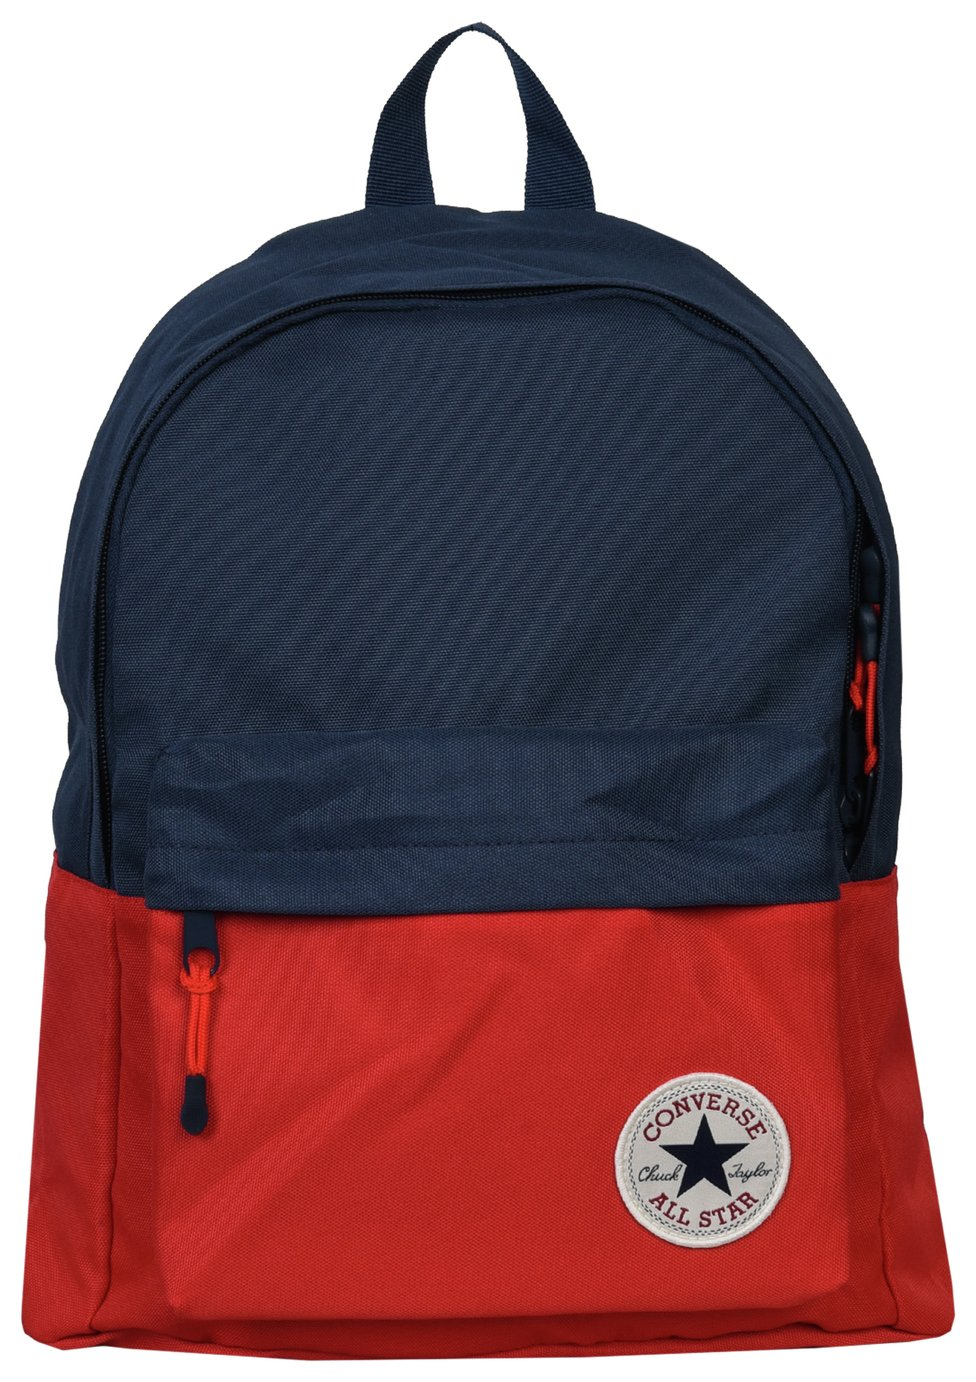 Converse All Star Backpack - Navy Blue and Red